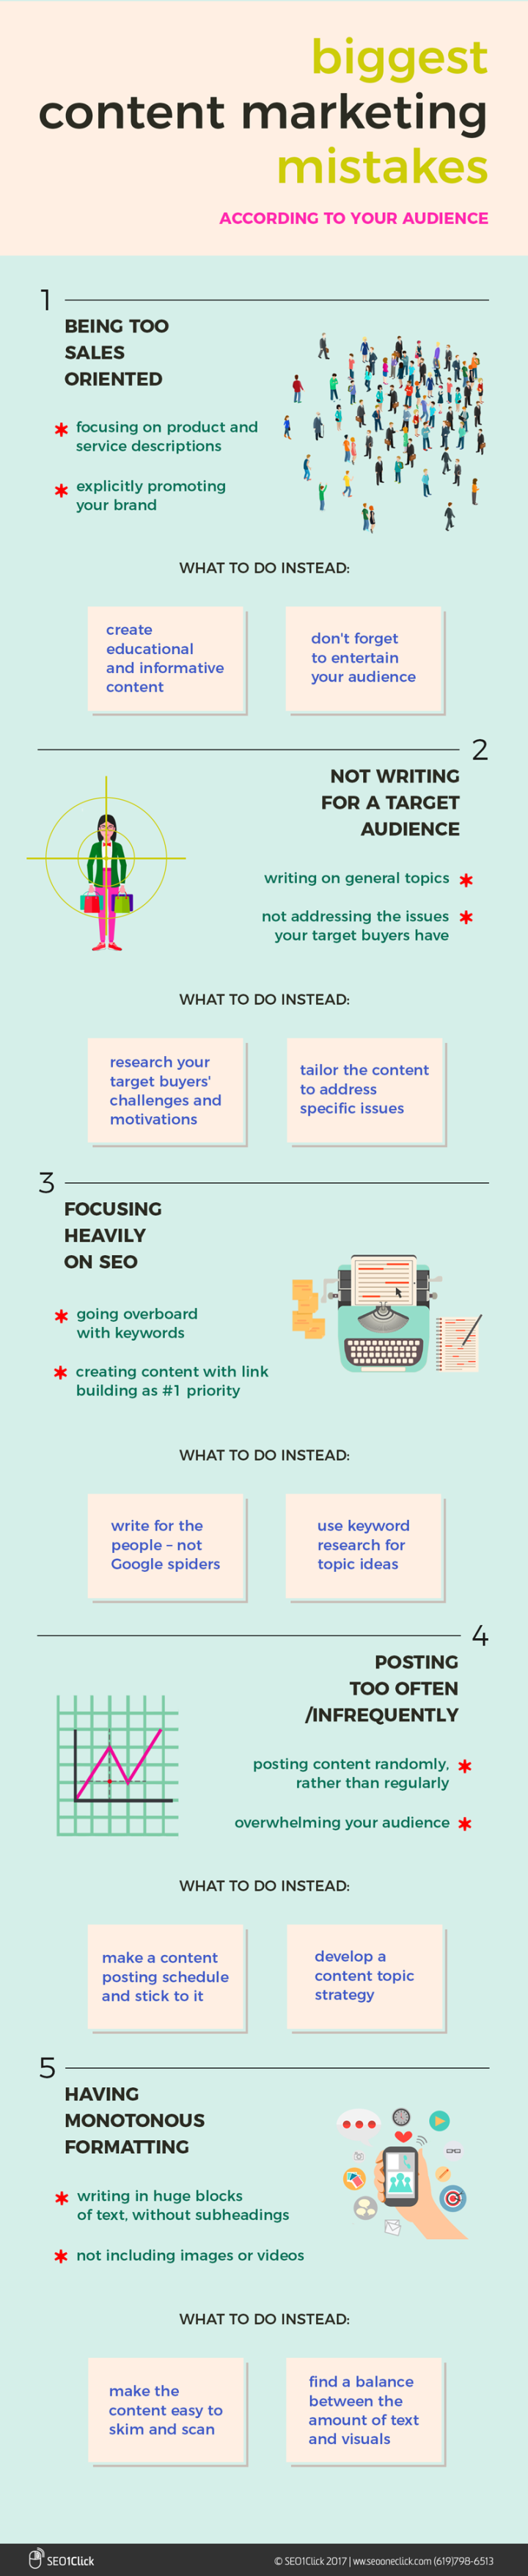 content-marketing-mistakes-infographic